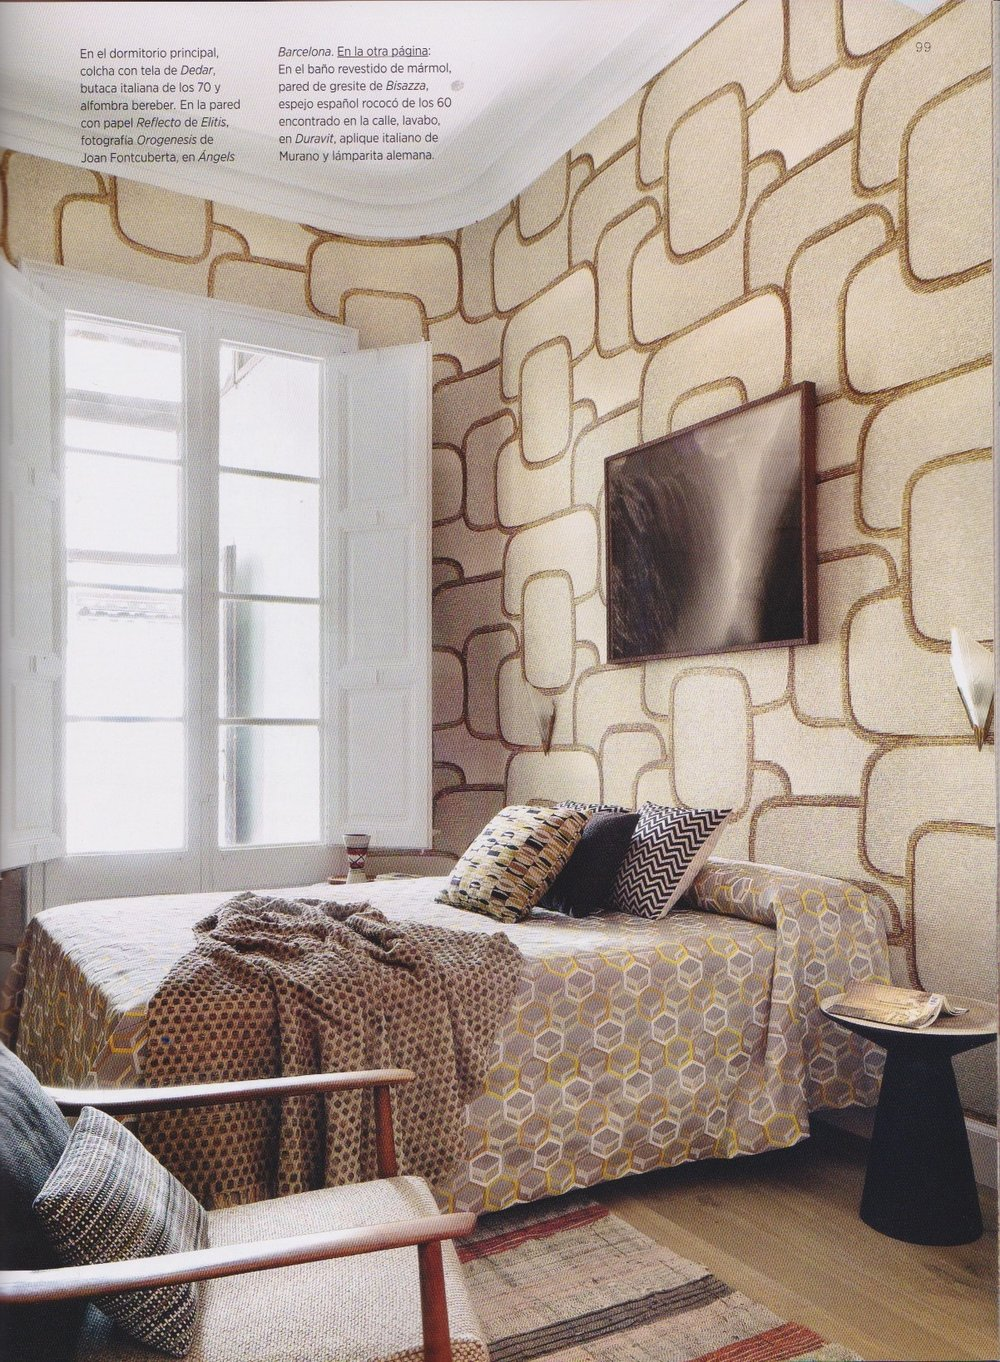 Wallpaper by Reflecto de Elitis in AD España issue Enero 2018/ Vida Segunda: Interior Desing by Mikel Irastorza/ Barcelona